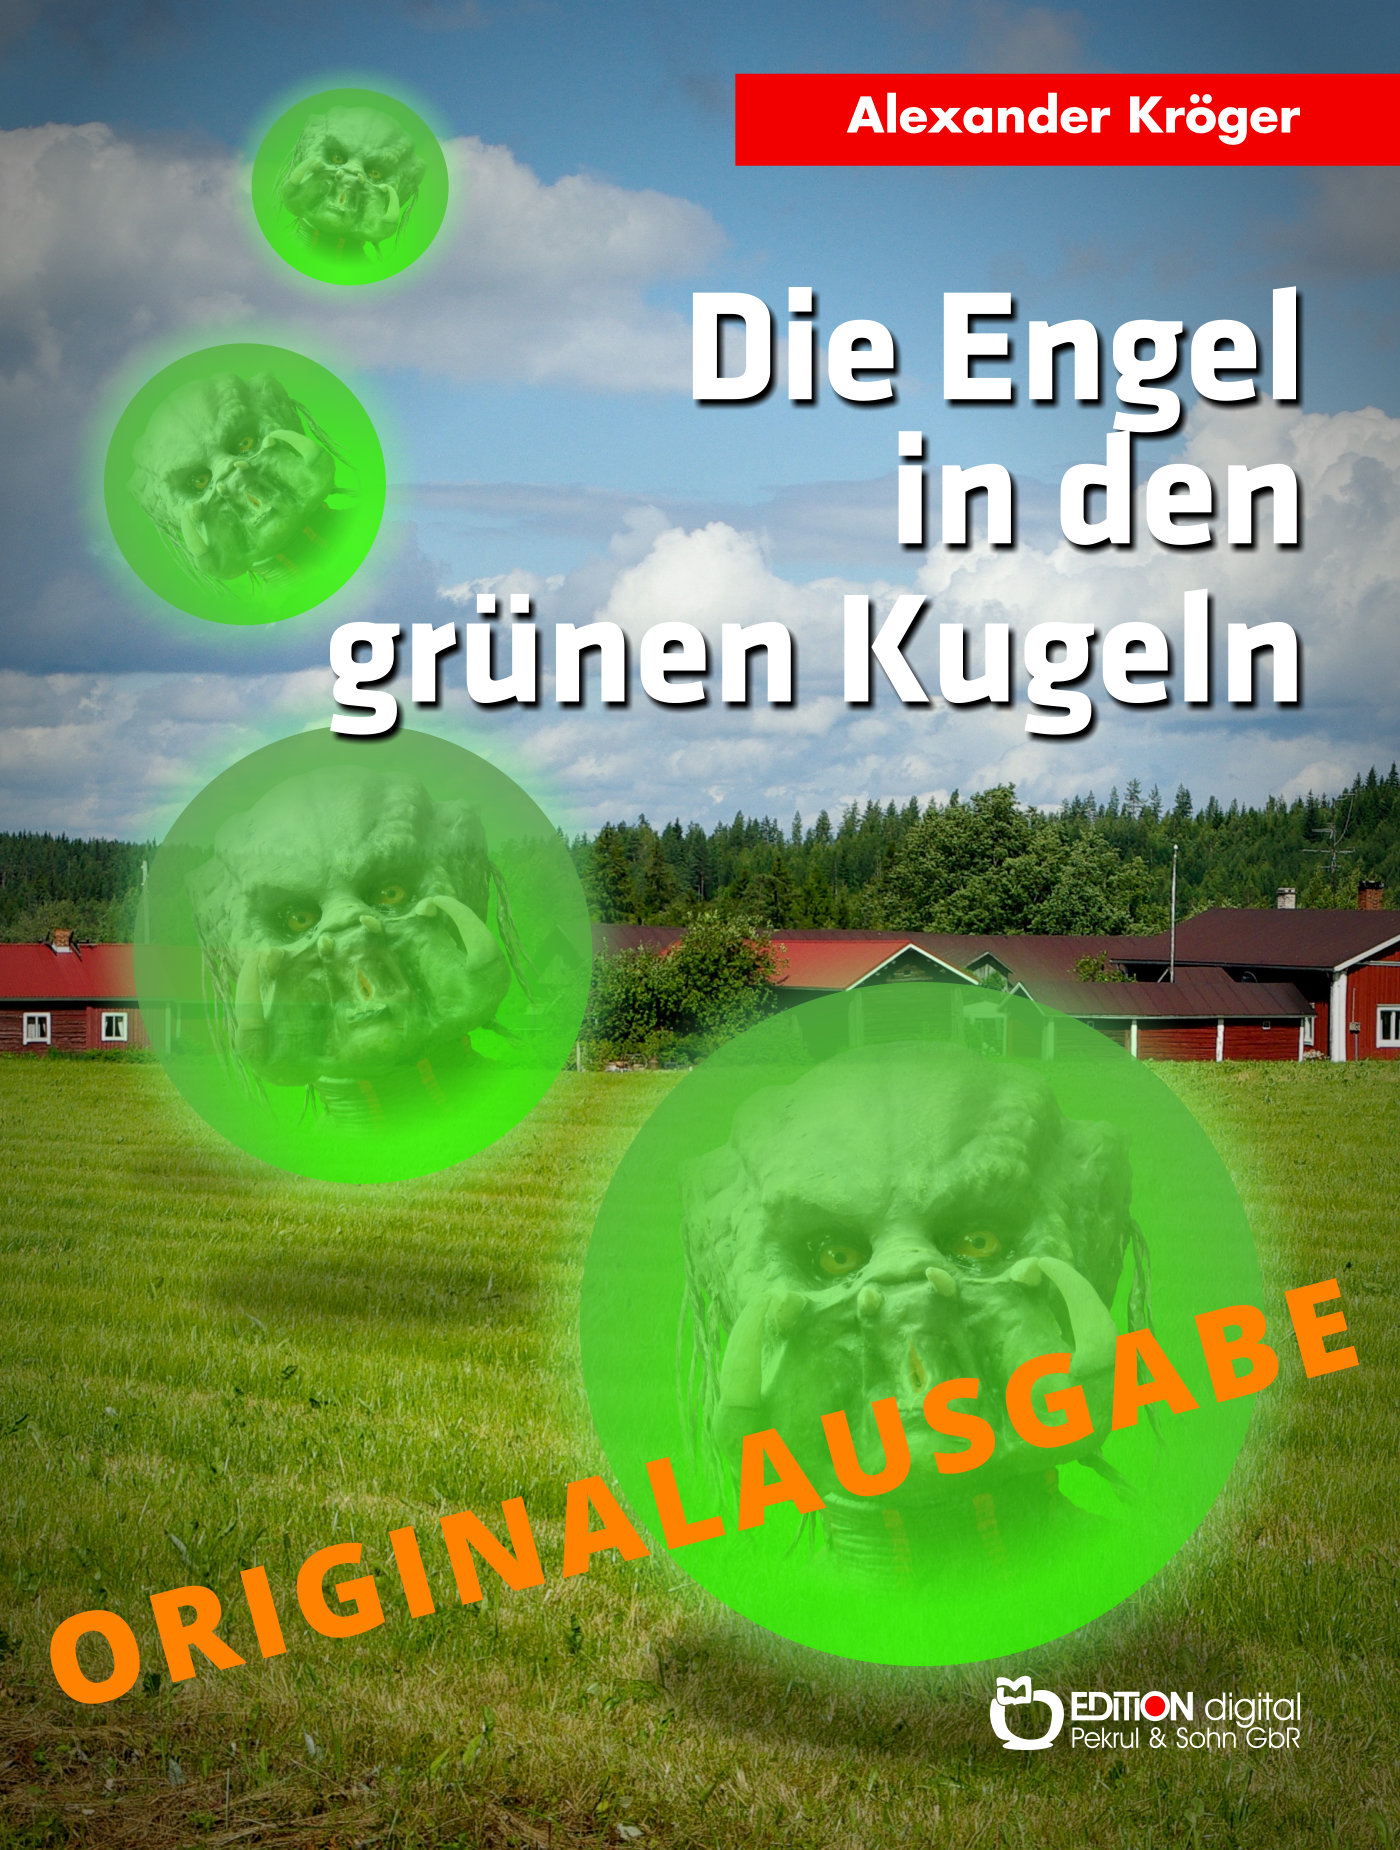 Die Engel in den grünen Kugeln - Originalausgabe. Wissenschaftlich-phantastischer Roman von Alexander Kröger